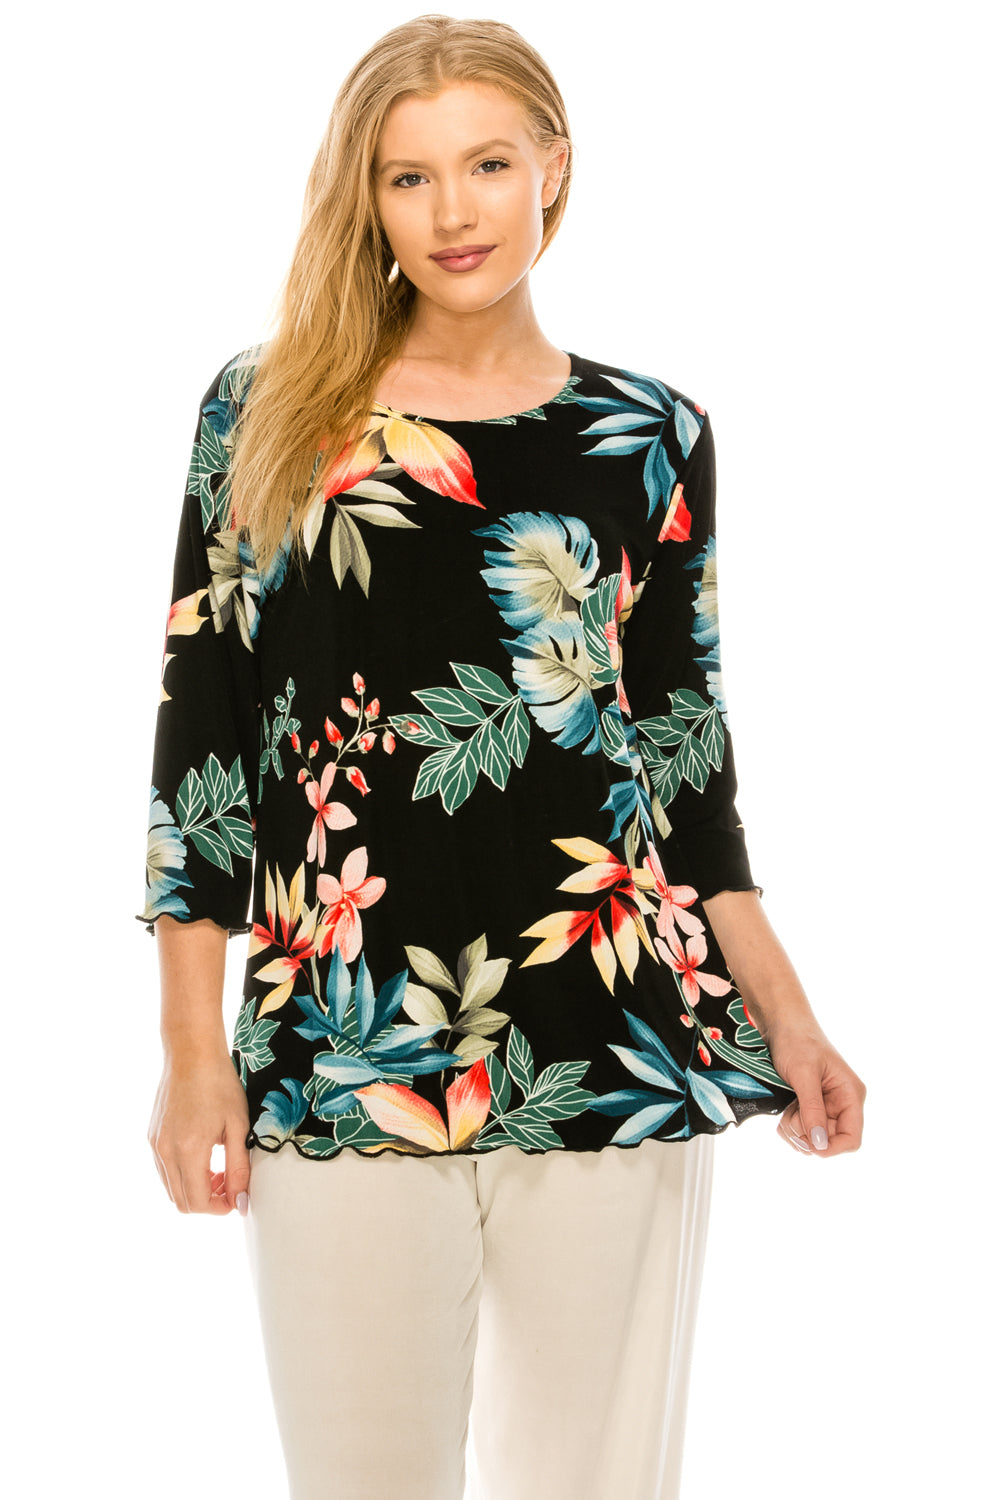 Jostar Women's Stretchy Merrow Top 3/4 Sleeve Print Plus, 158BN-QXP-W189 - Jostar Online